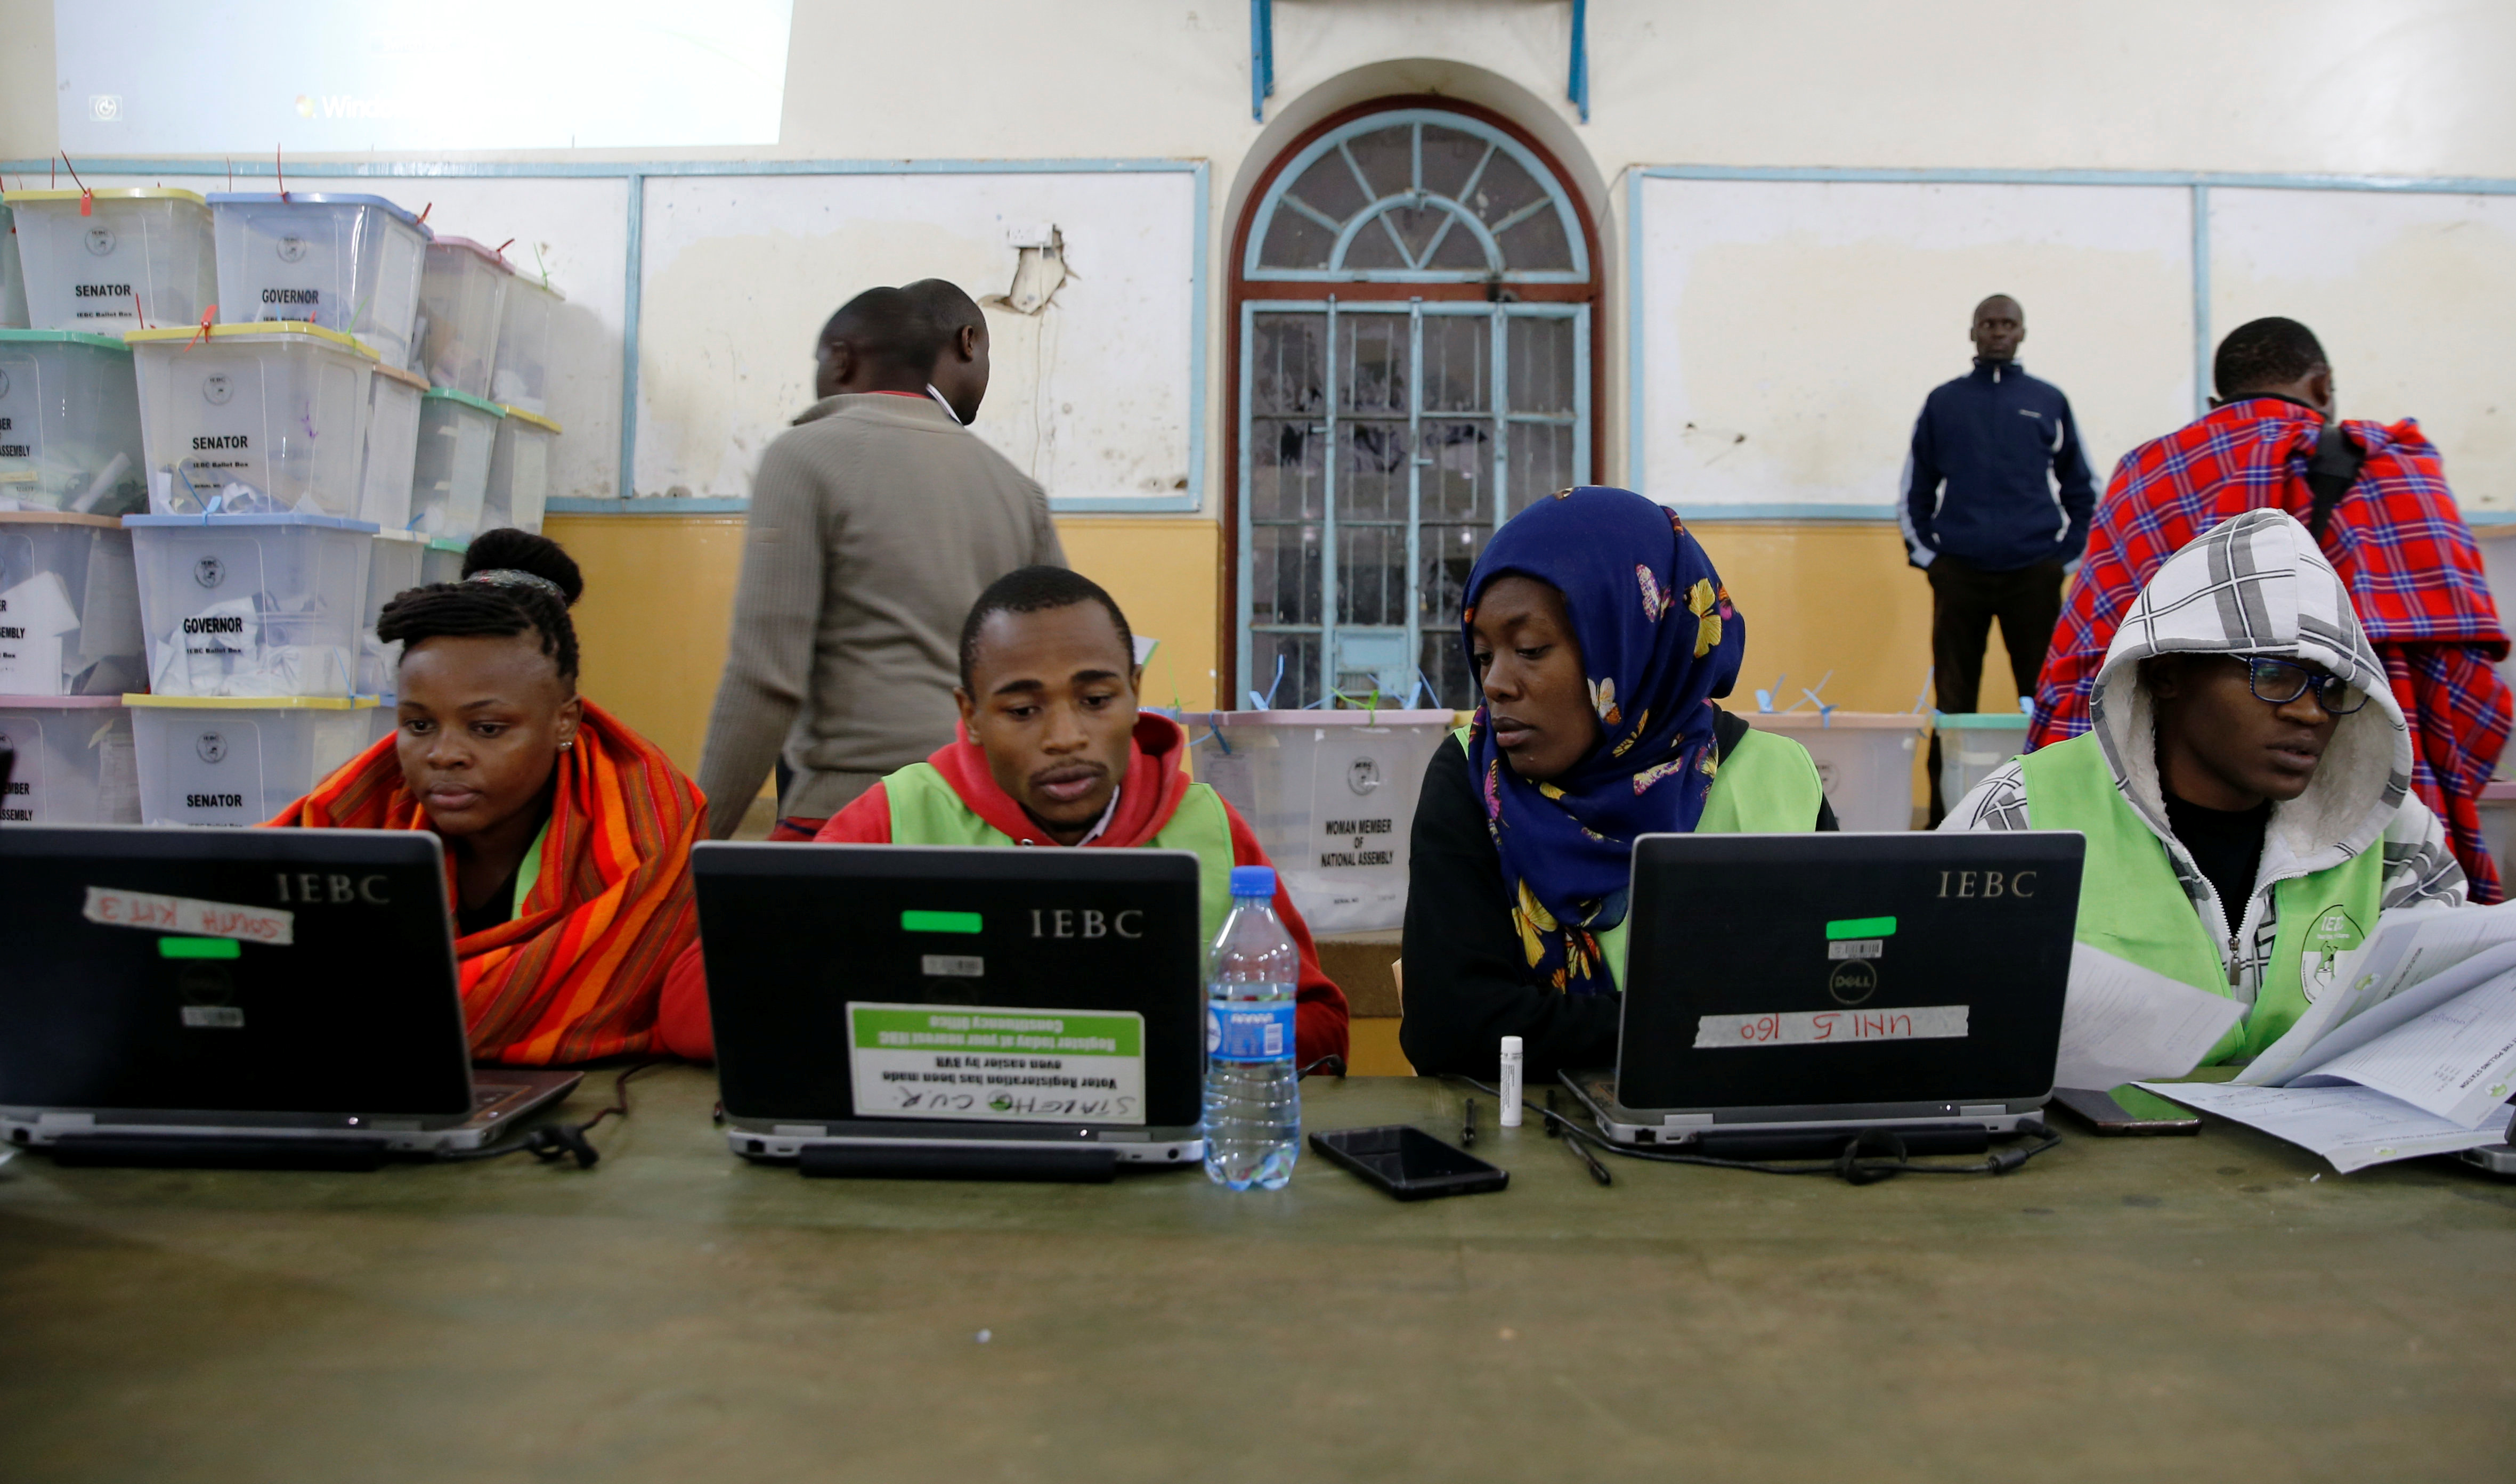 Election officials from the Independent Electoral and Boundaries Commission (IEBC) work on computers in the Jamuhuri High School tallying center in Nairobi, Kenya August 9, 2017. REUTERS/Thomas Mukoya